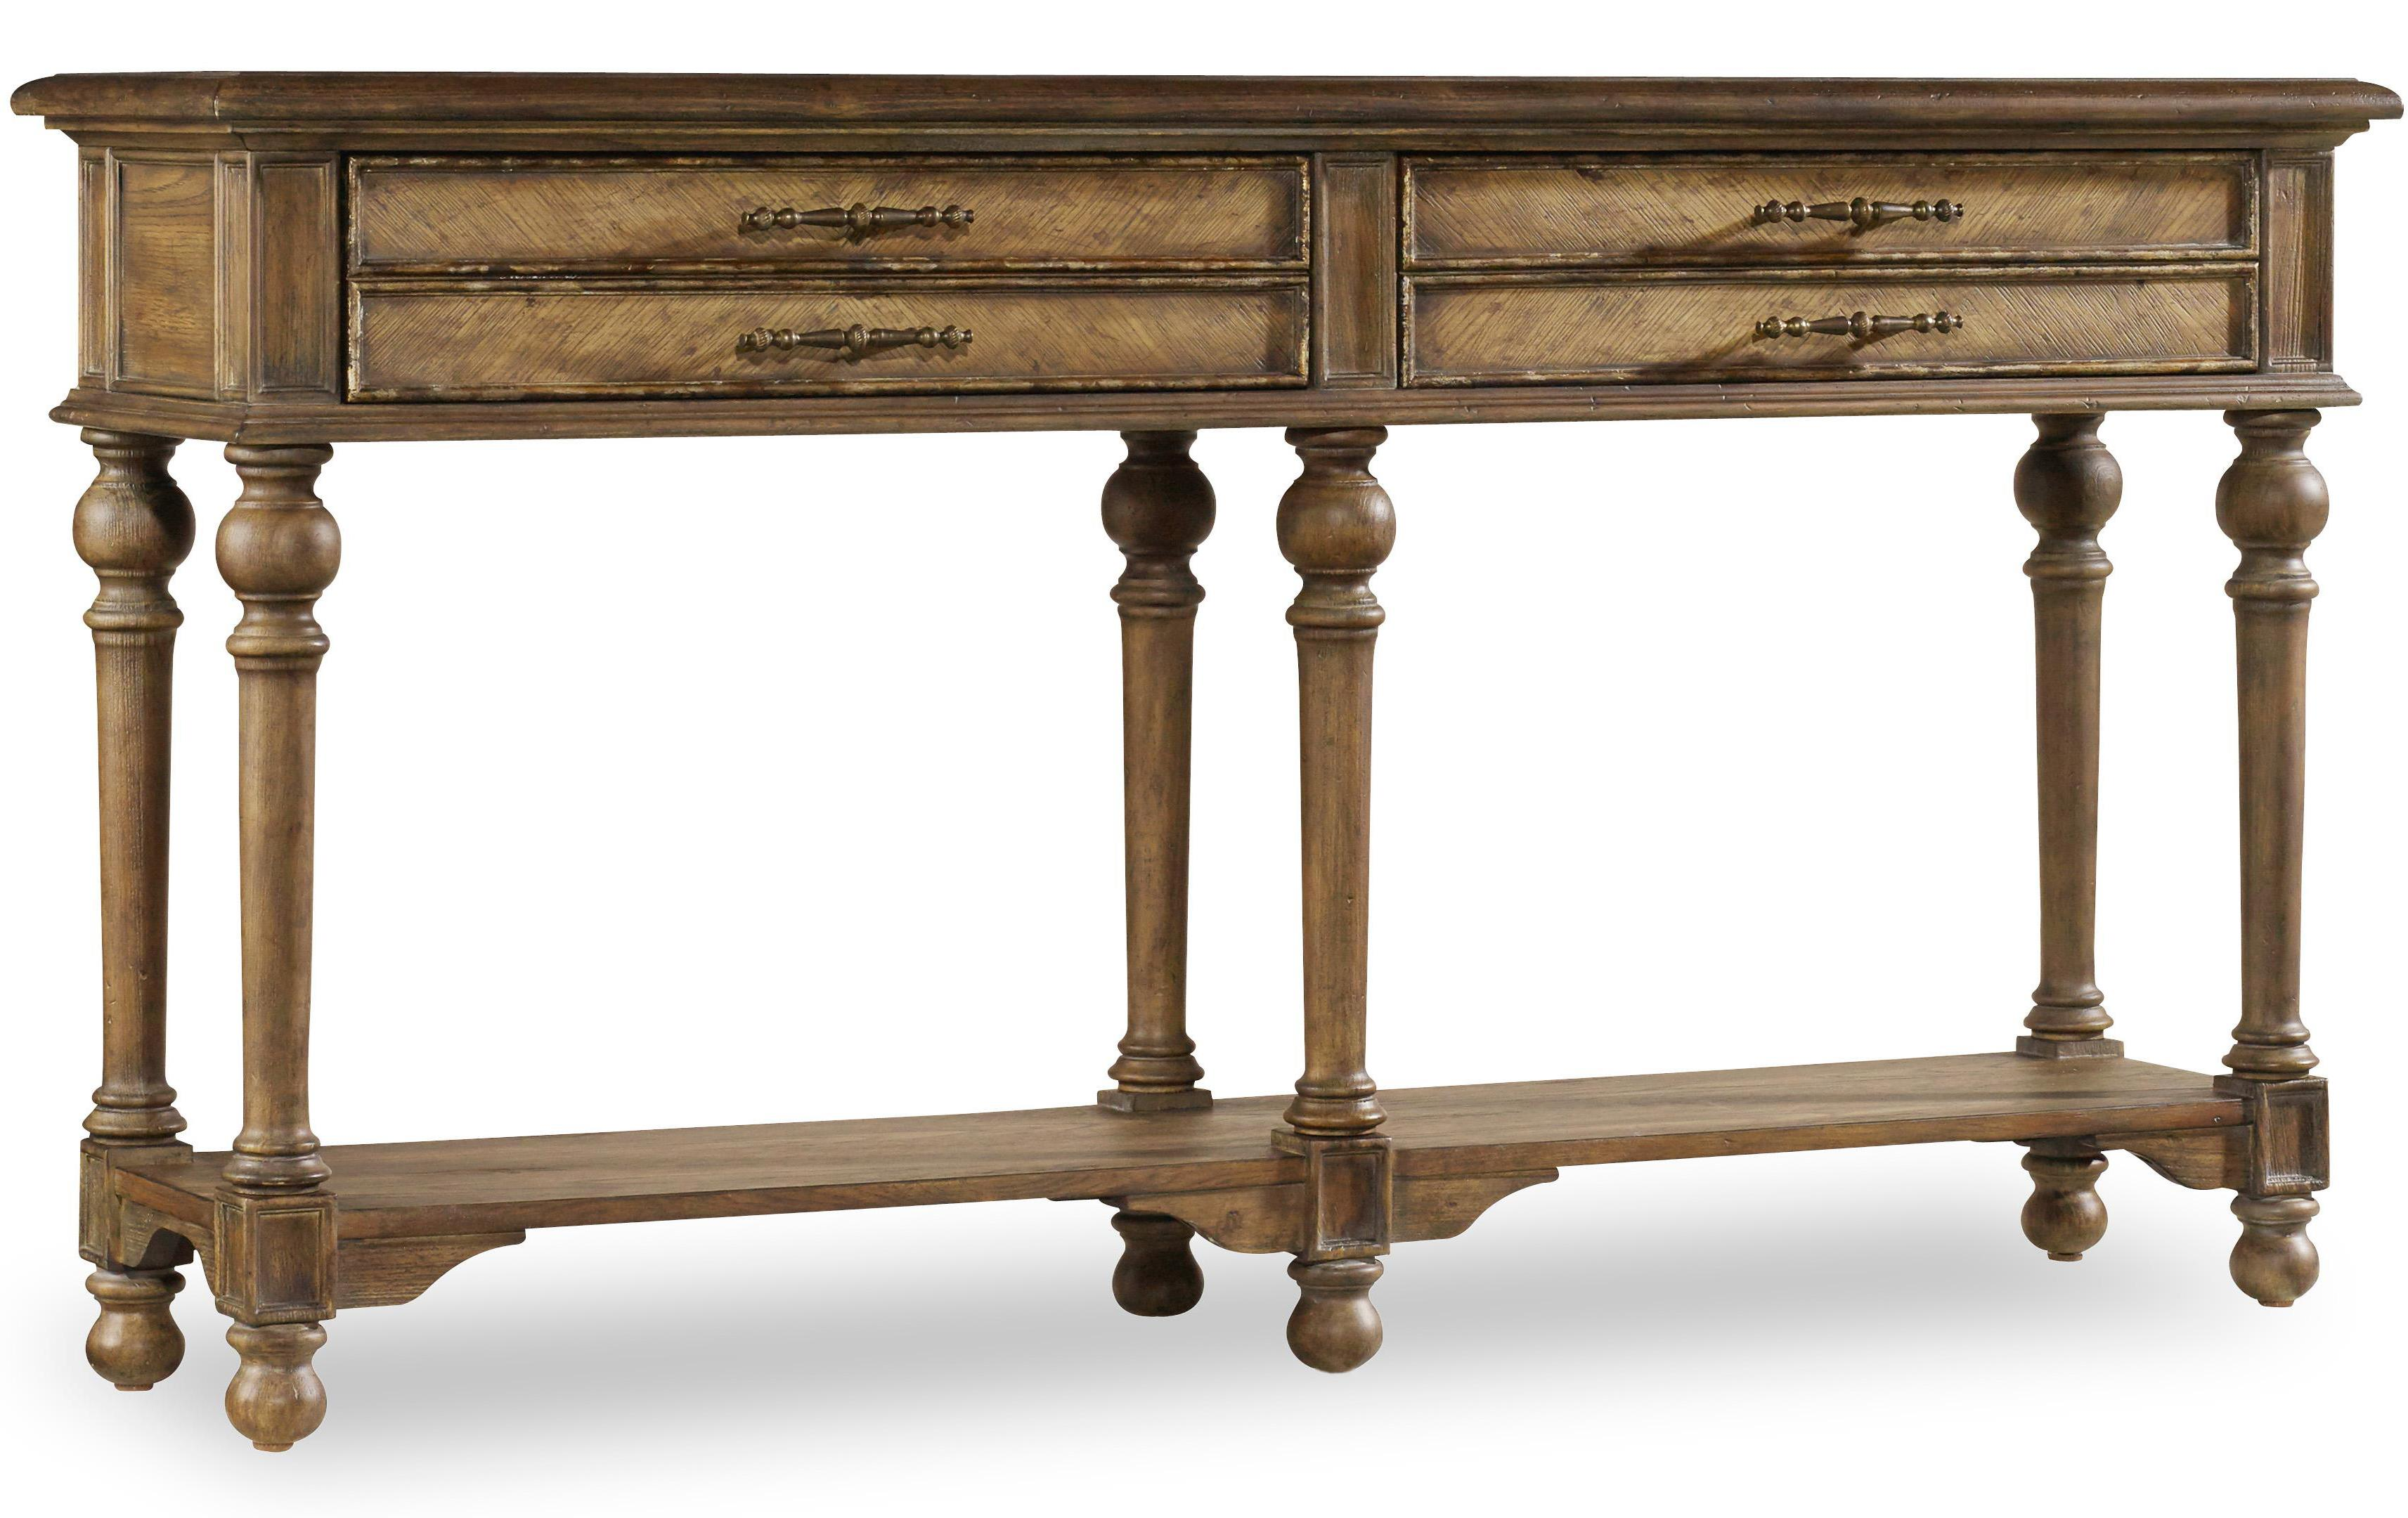 Hamilton Home Living Room Accents Console - Item Number: 5365-85002